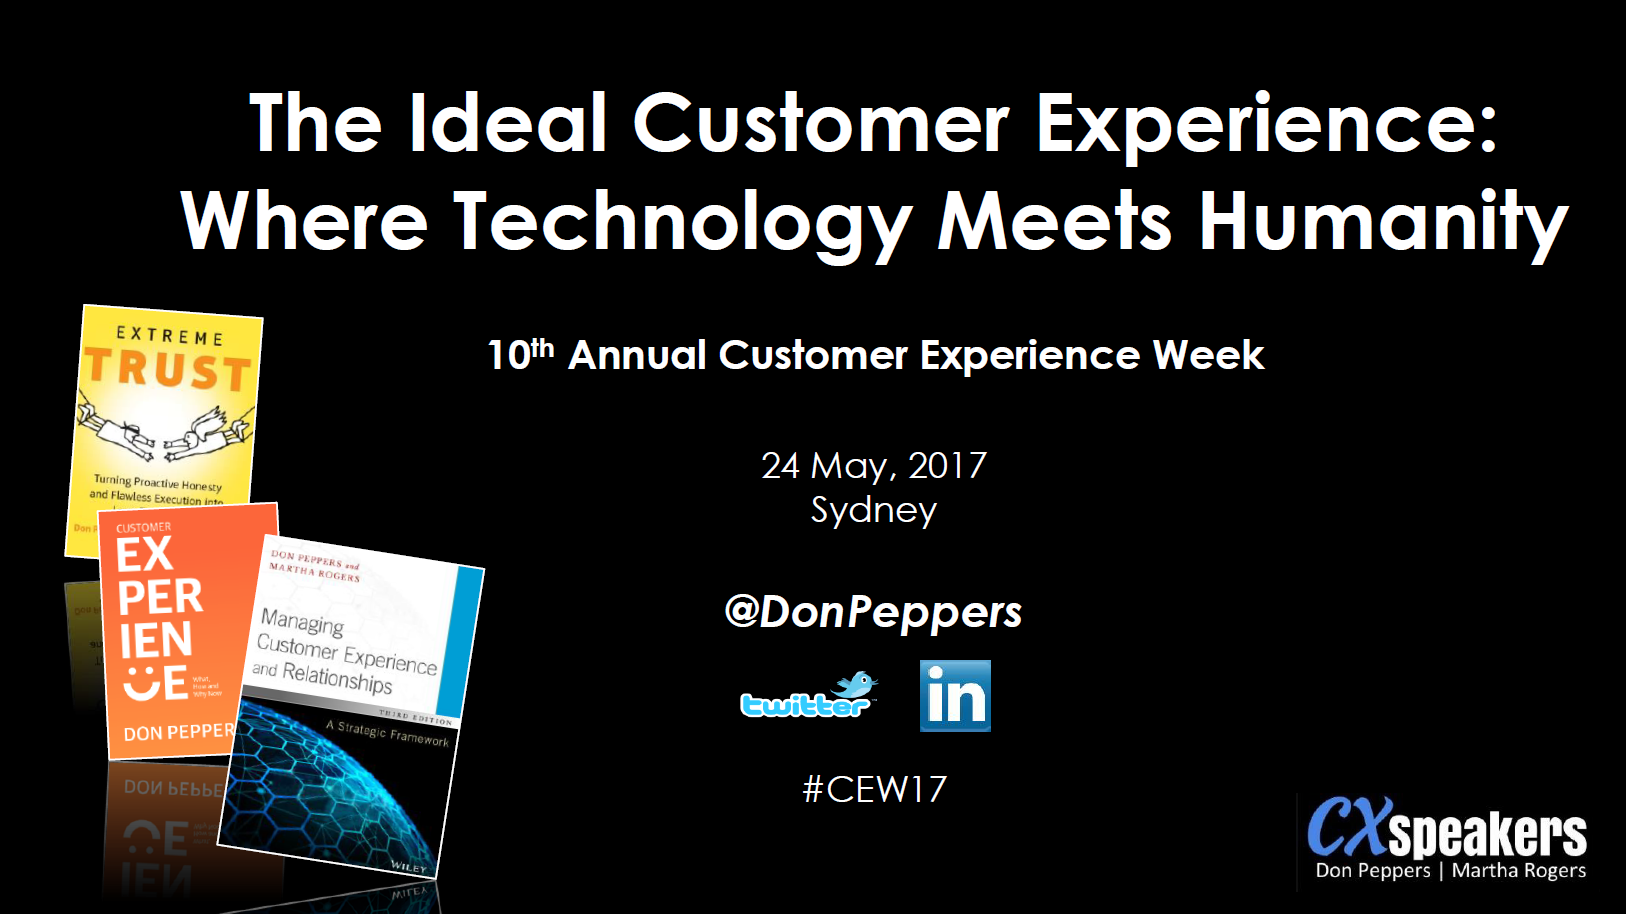 The Ideal Customer Experience: Where Technology Meets Humanity